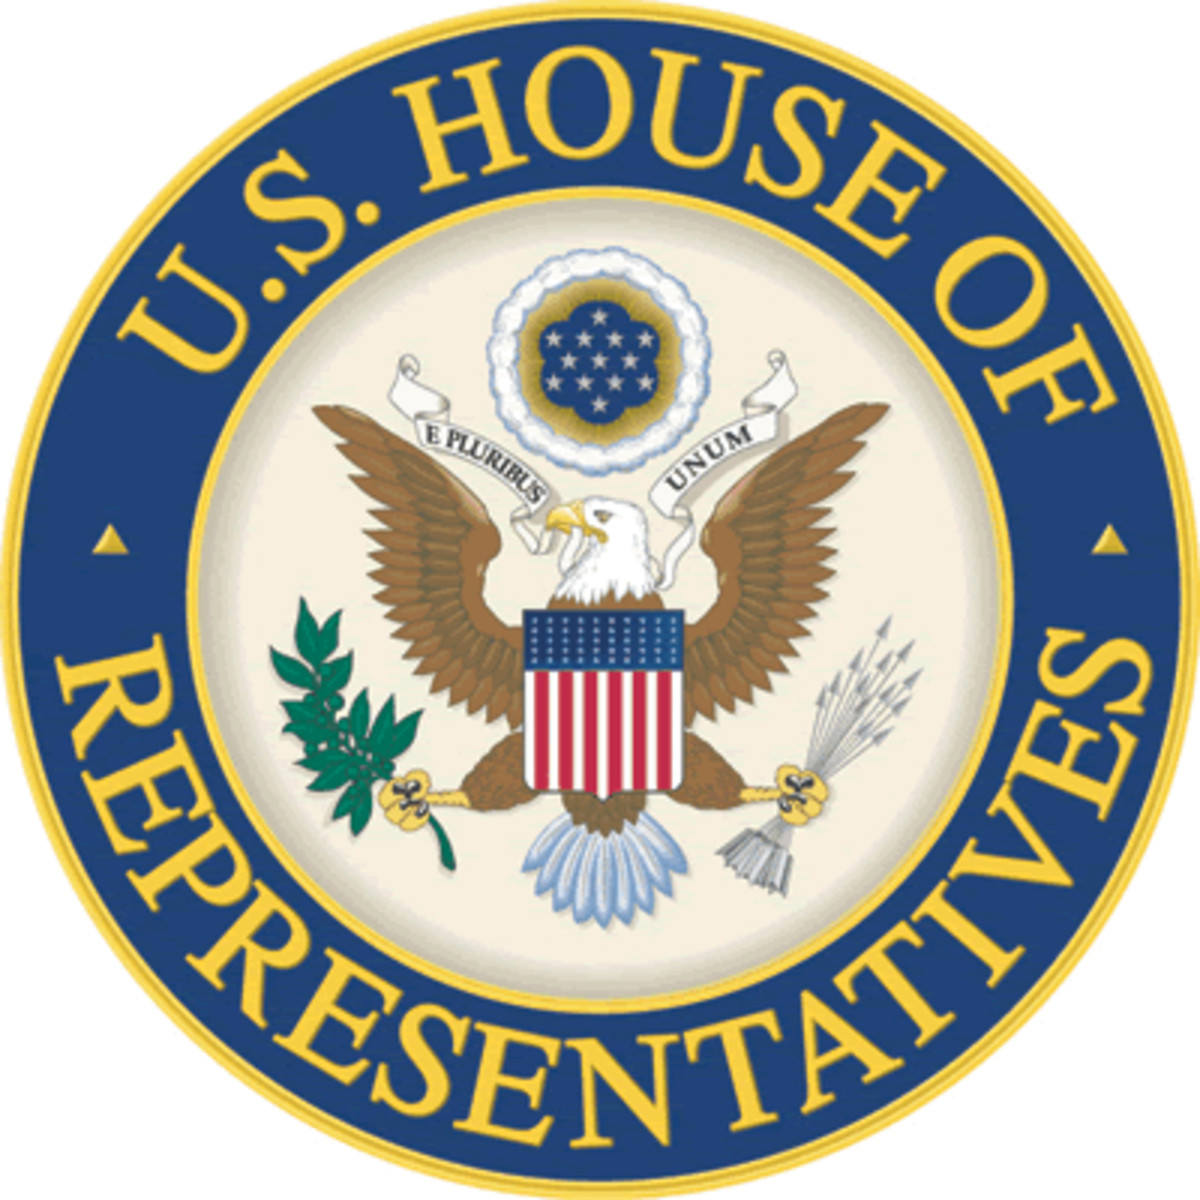 Seal of the House of Representatives.